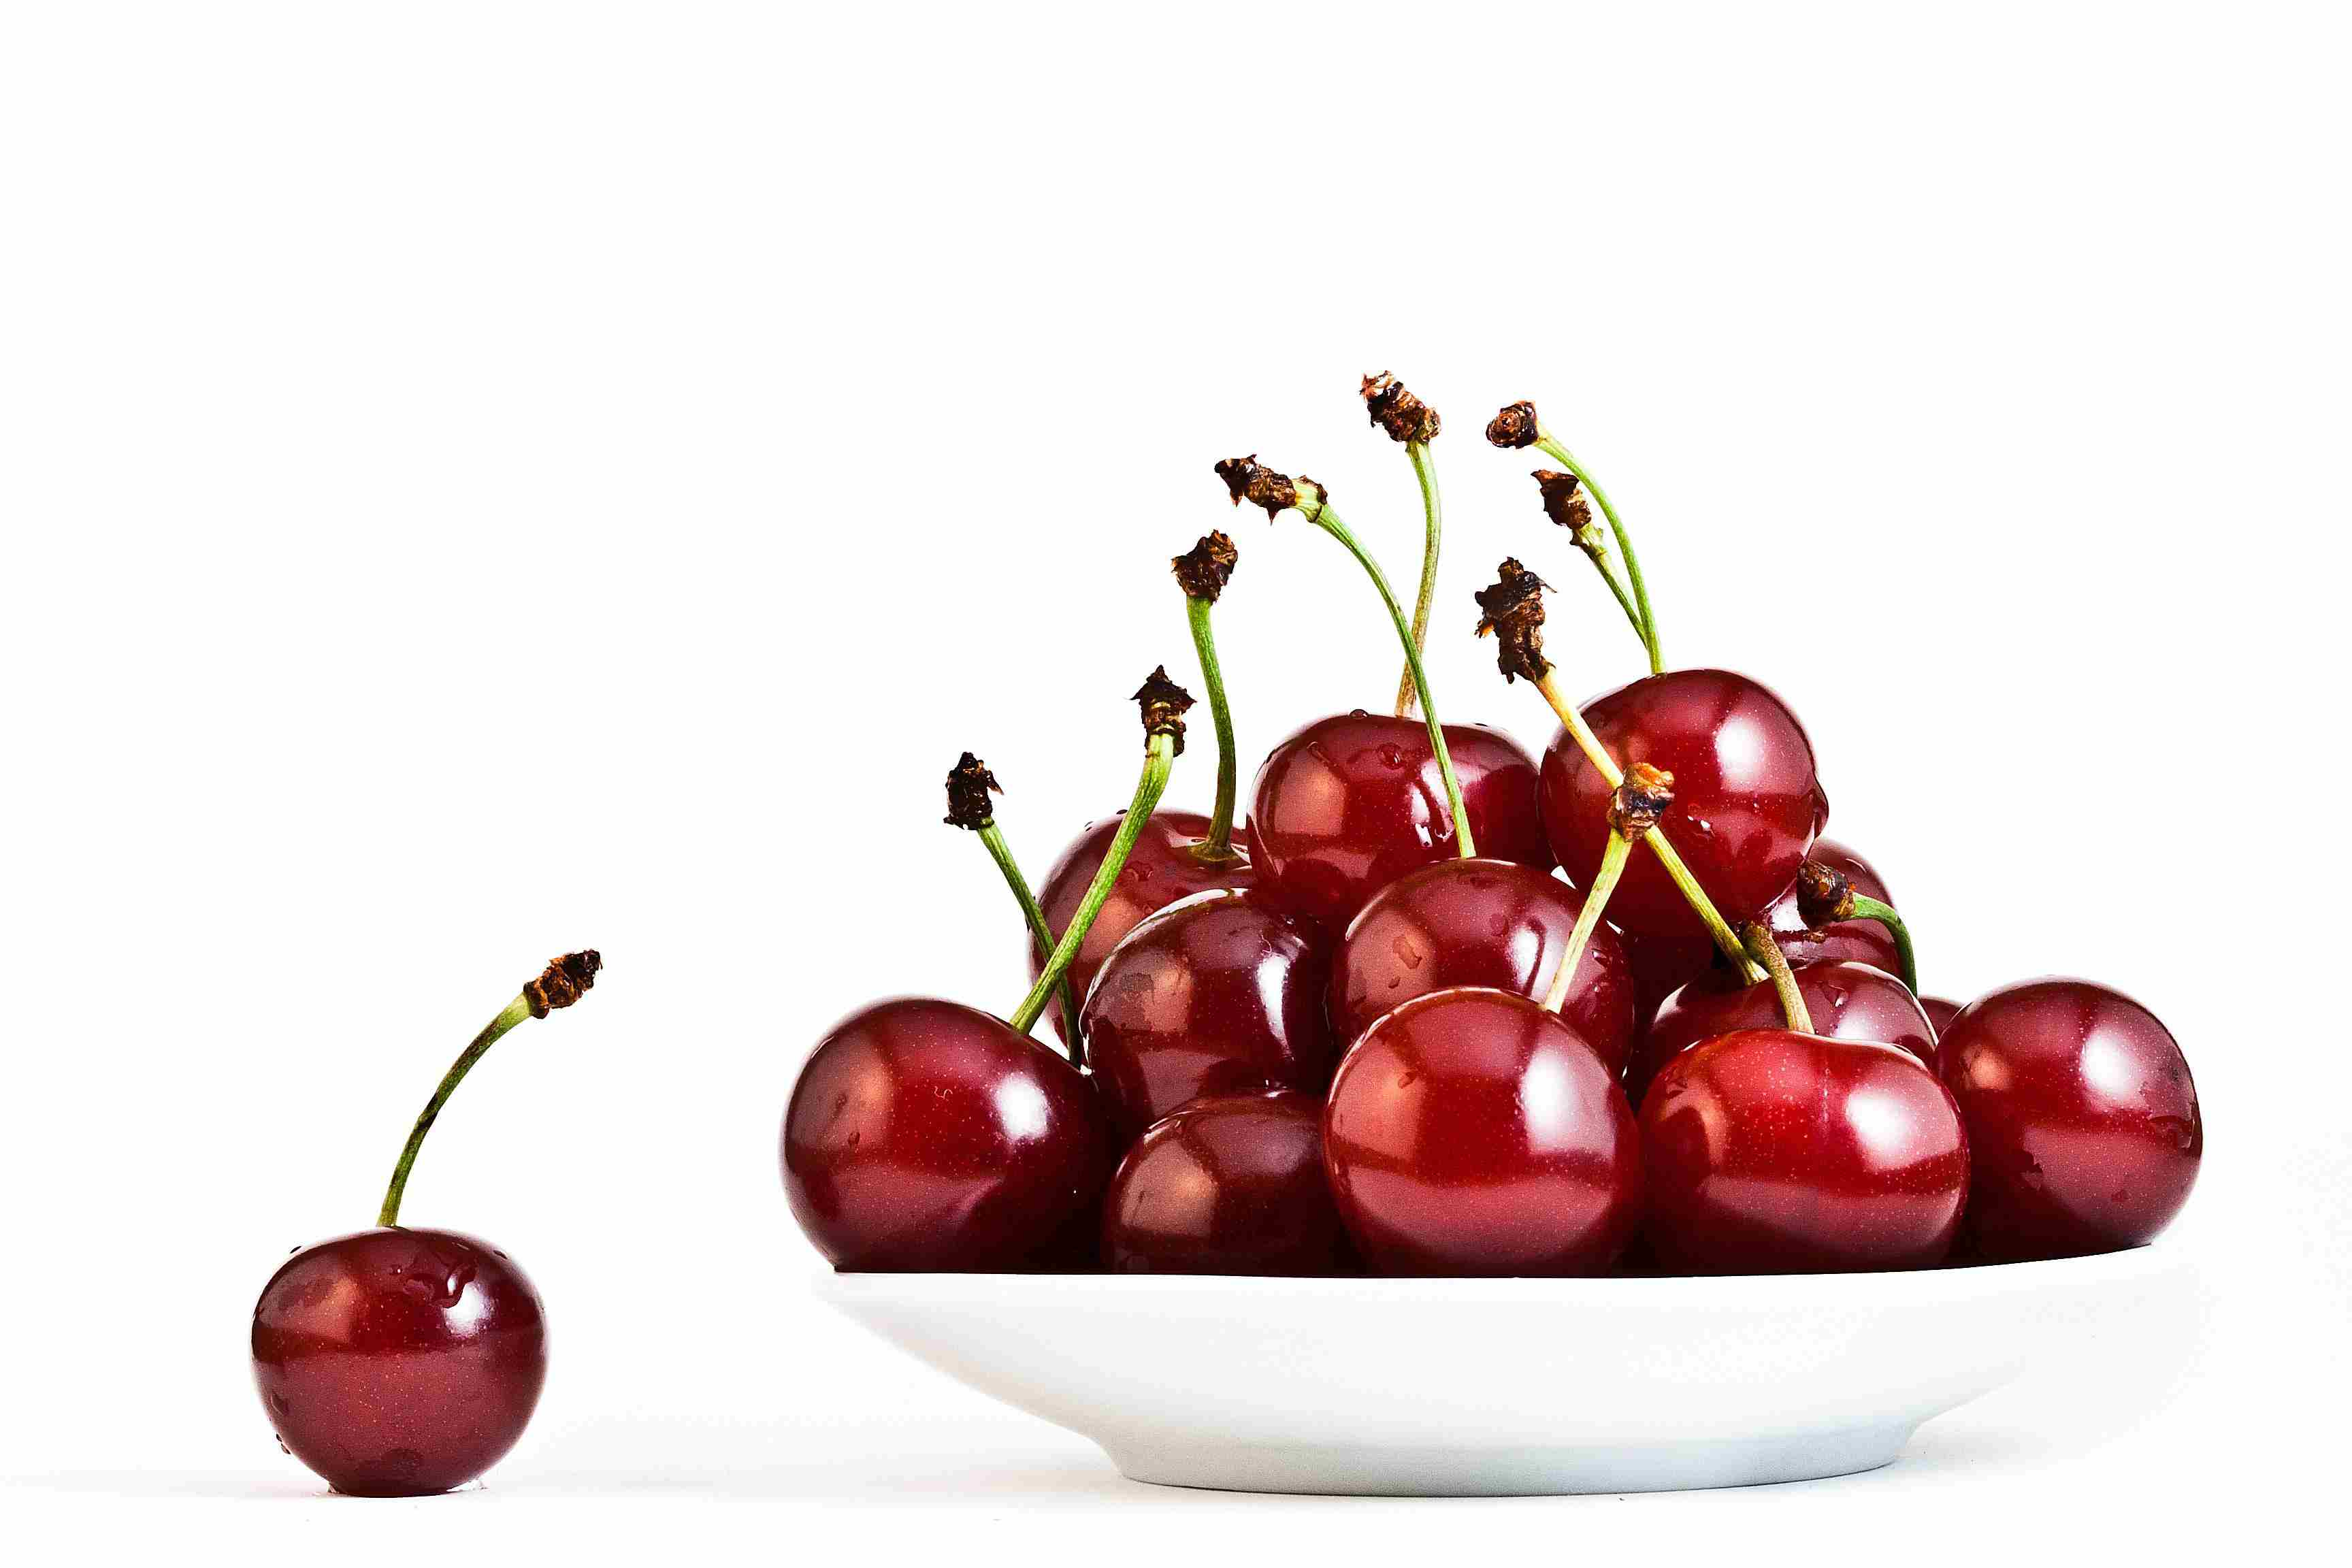 Cherries on a plate